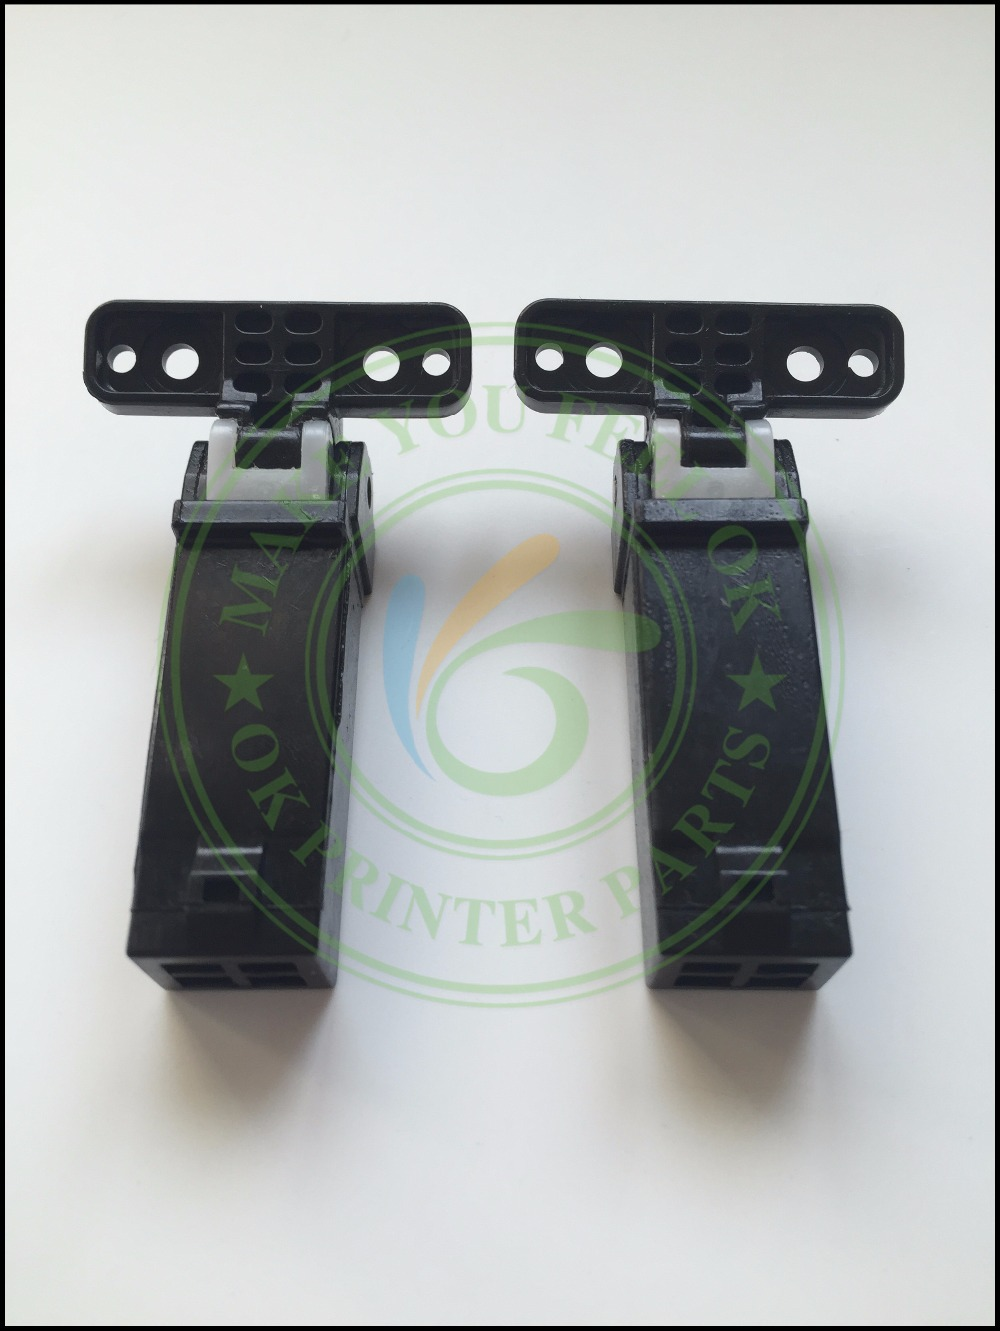 10 ADF Mea Unit Hinge Assembly for Samsung SCX4835 4600 4623 4833 4727 4728 4729 5639 5739 CLX3170 3175 3185 3400 3401 3405 3406